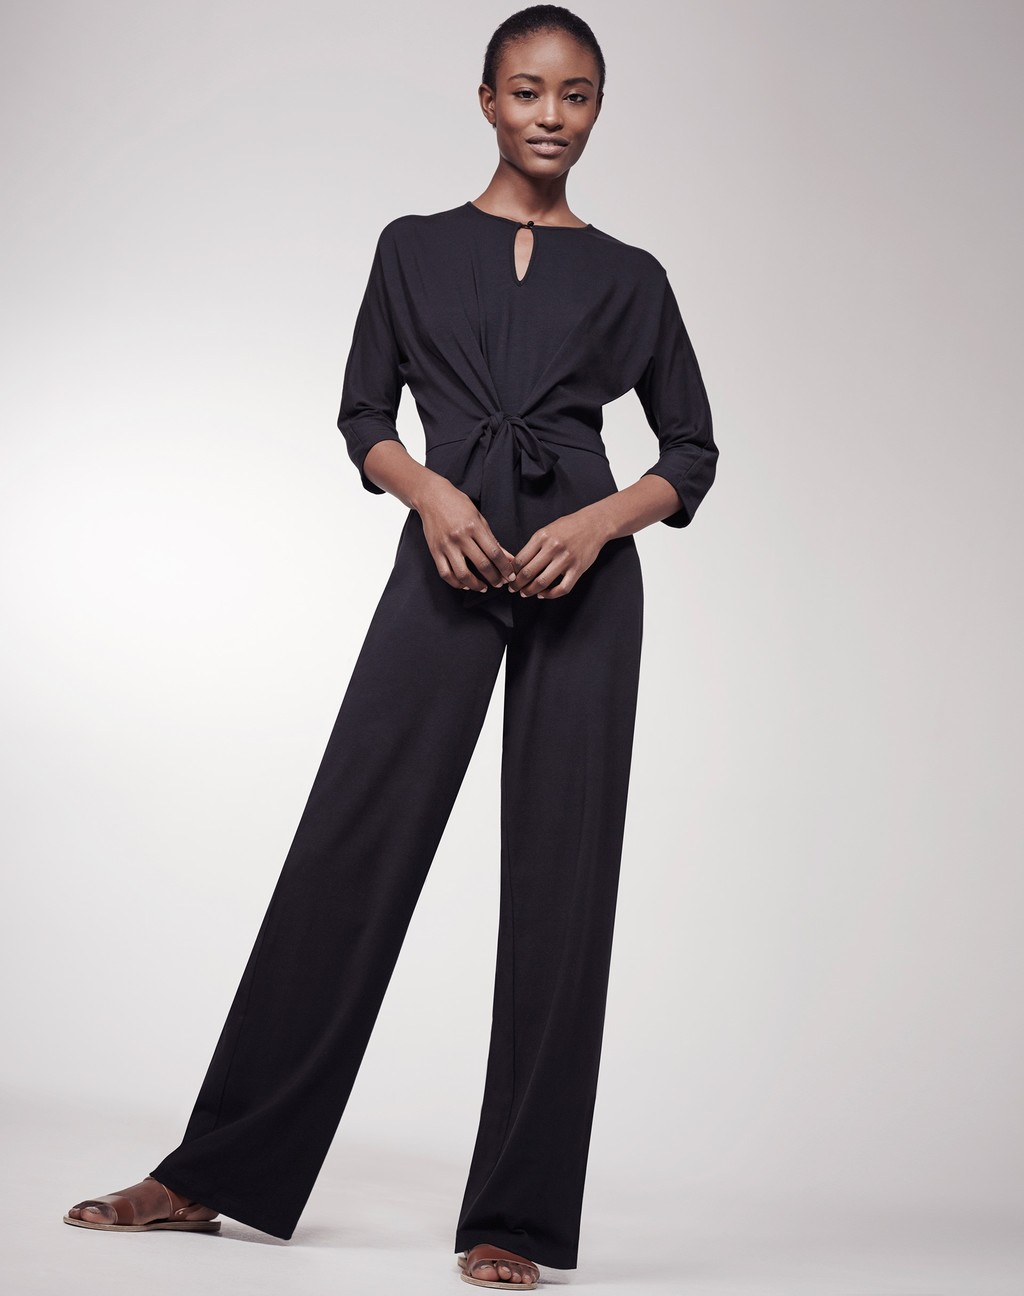 Tie Front Jumpsuit Black - length: standard; fit: tailored/fitted; pattern: plain; waist detail: twist front waist detail/nipped in at waist on one side/soft pleats/draping/ruching/gathering waist detail; predominant colour: black; occasions: evening, occasion; neckline: peep hole neckline; fibres: polyester/polyamide - stretch; sleeve length: 3/4 length; sleeve style: standard; style: jumpsuit; pattern type: fabric; texture group: other - light to midweight; season: s/s 2016; wardrobe: event